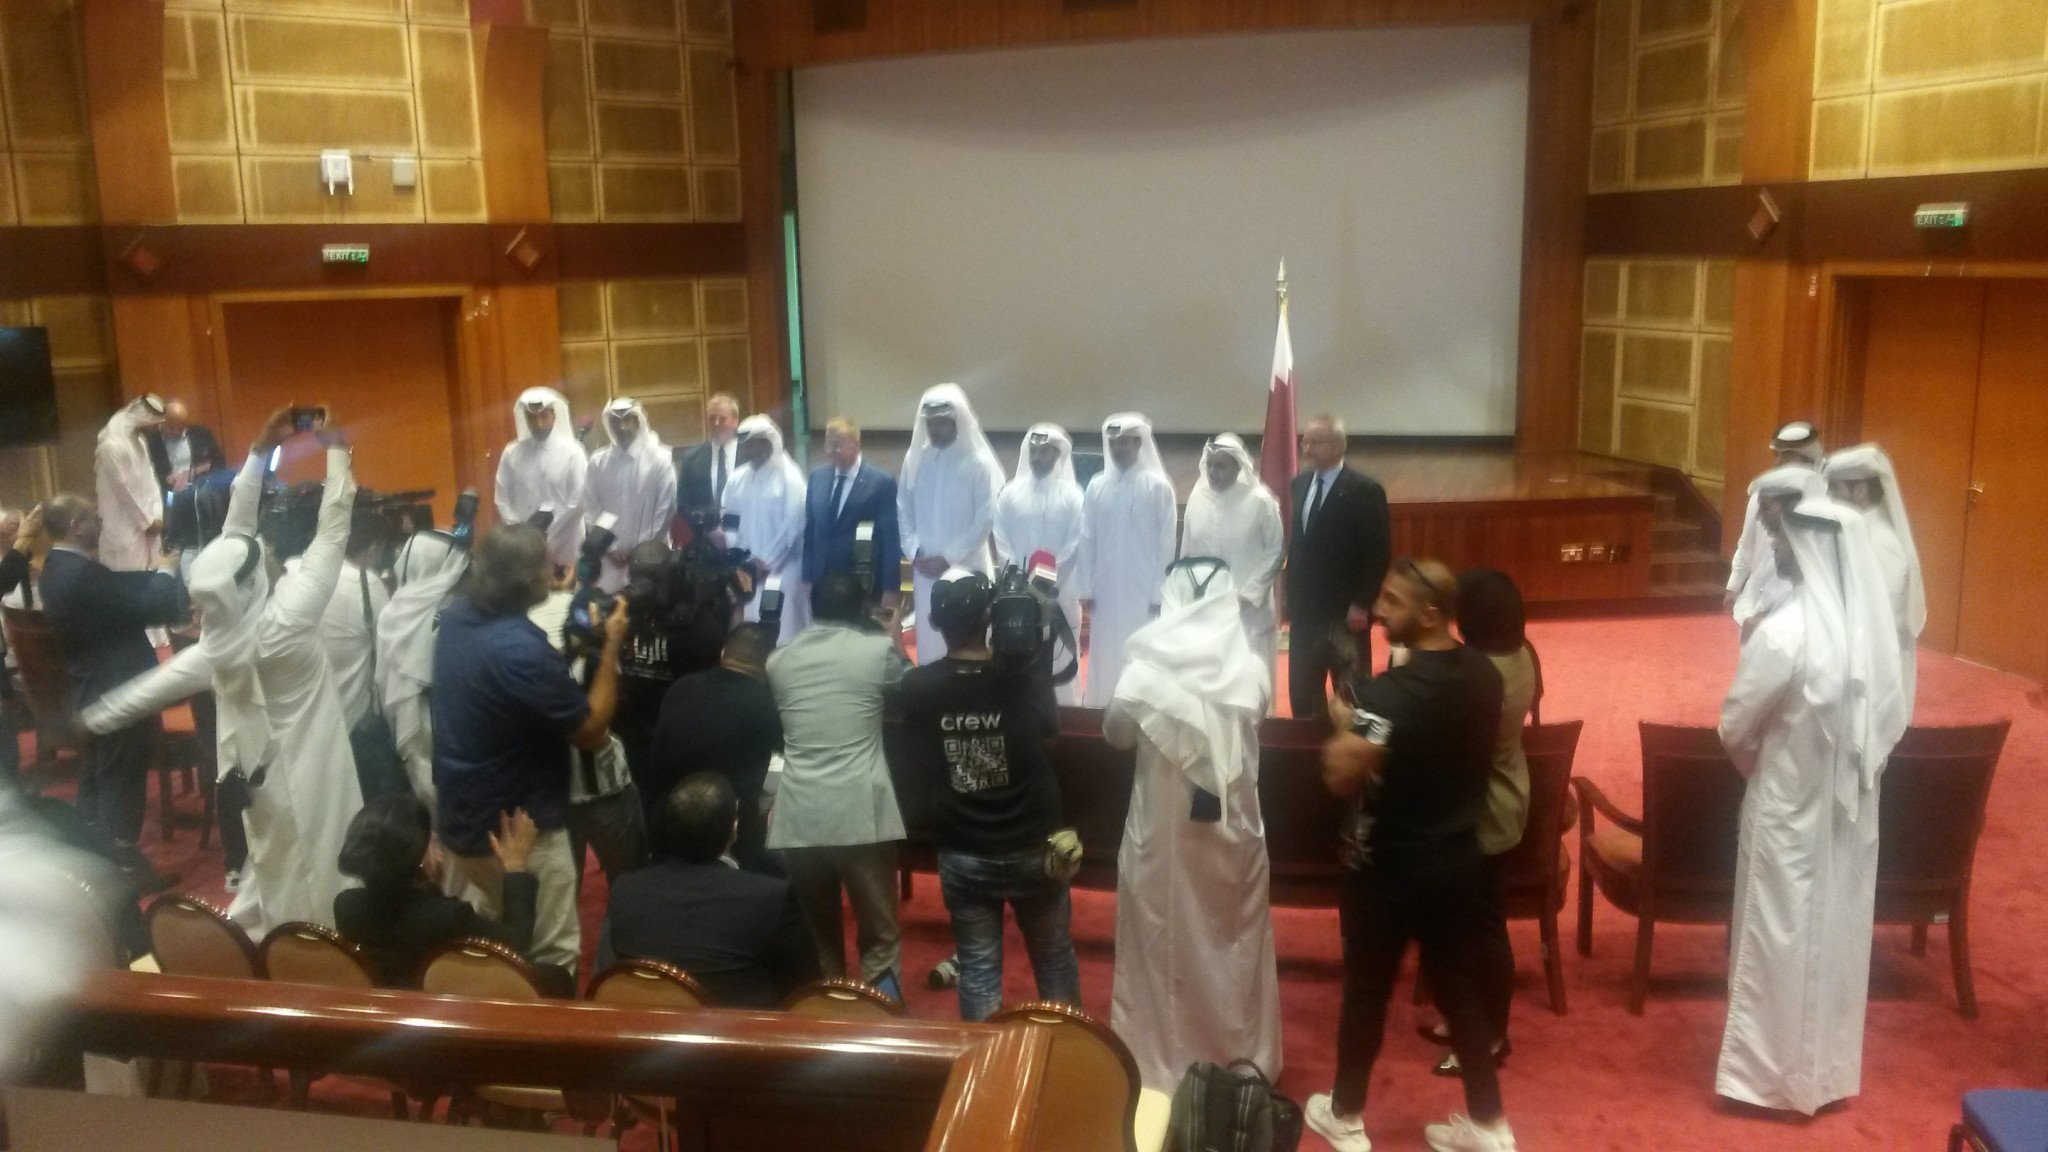 John Coates acclaimed a Memorandum of Understanding signed at the Qatar Olympic Committee HG today ©ITG